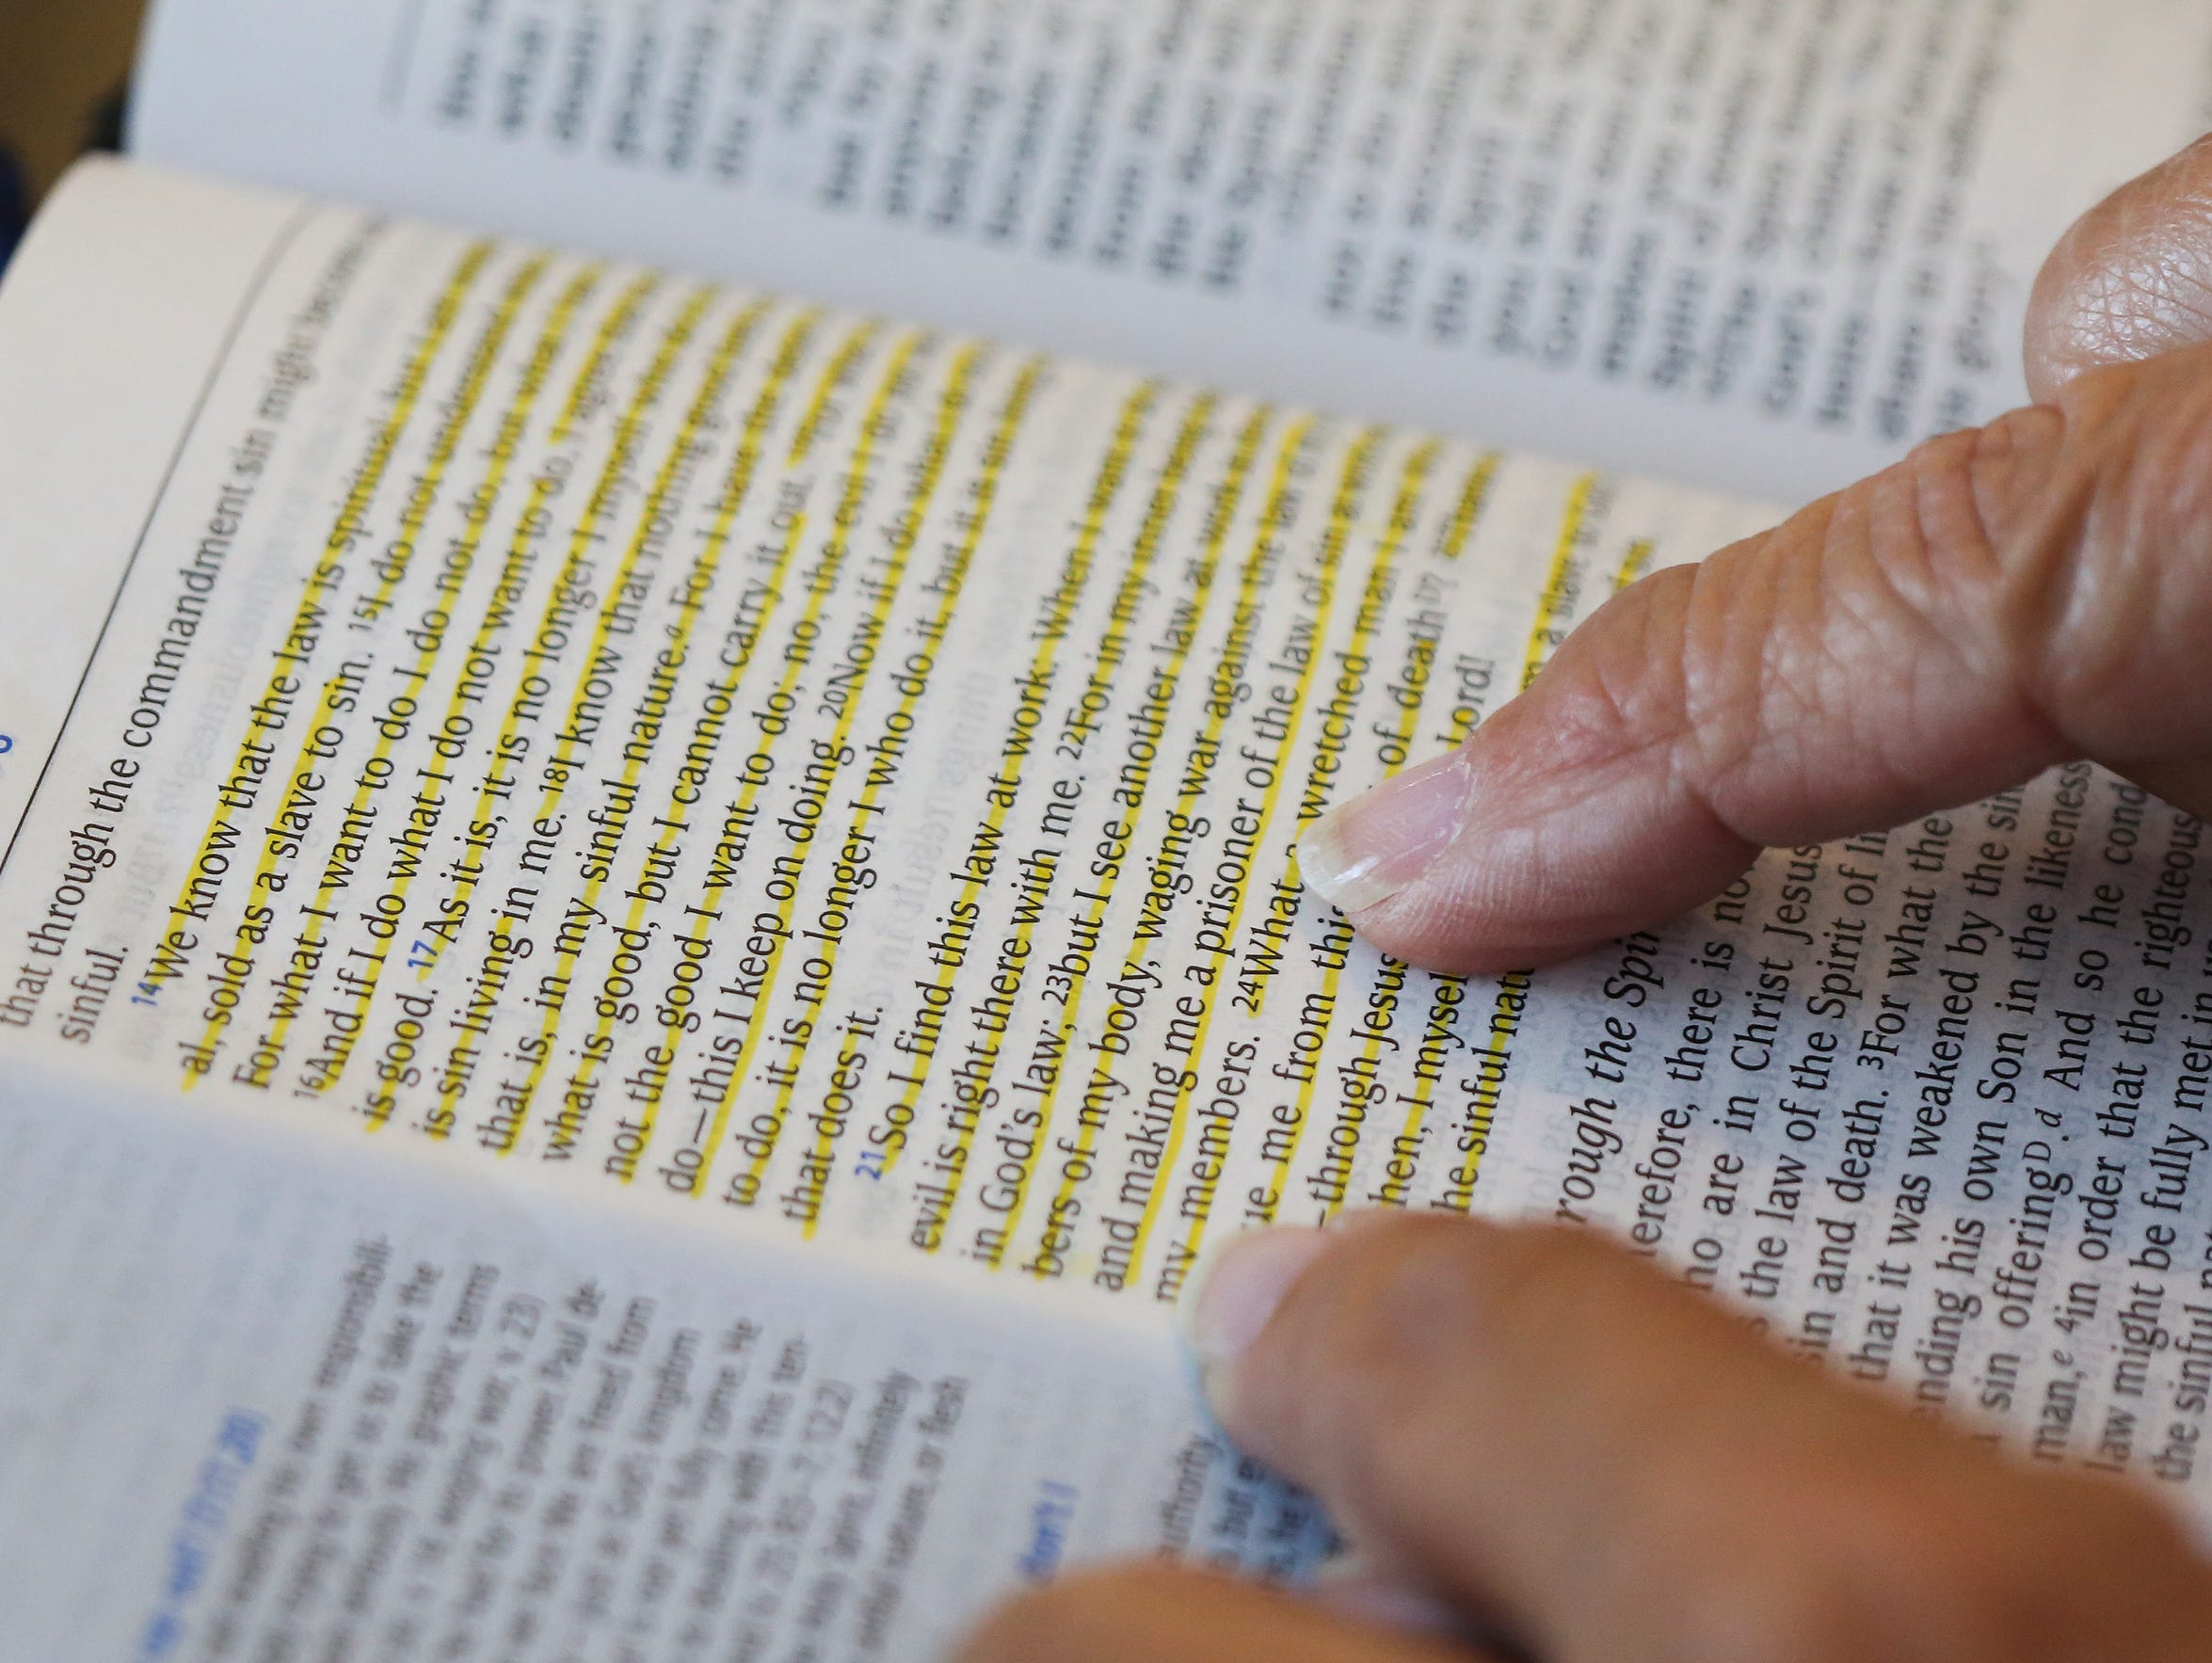 Brenda Cooley looks at a bible verse at her home.